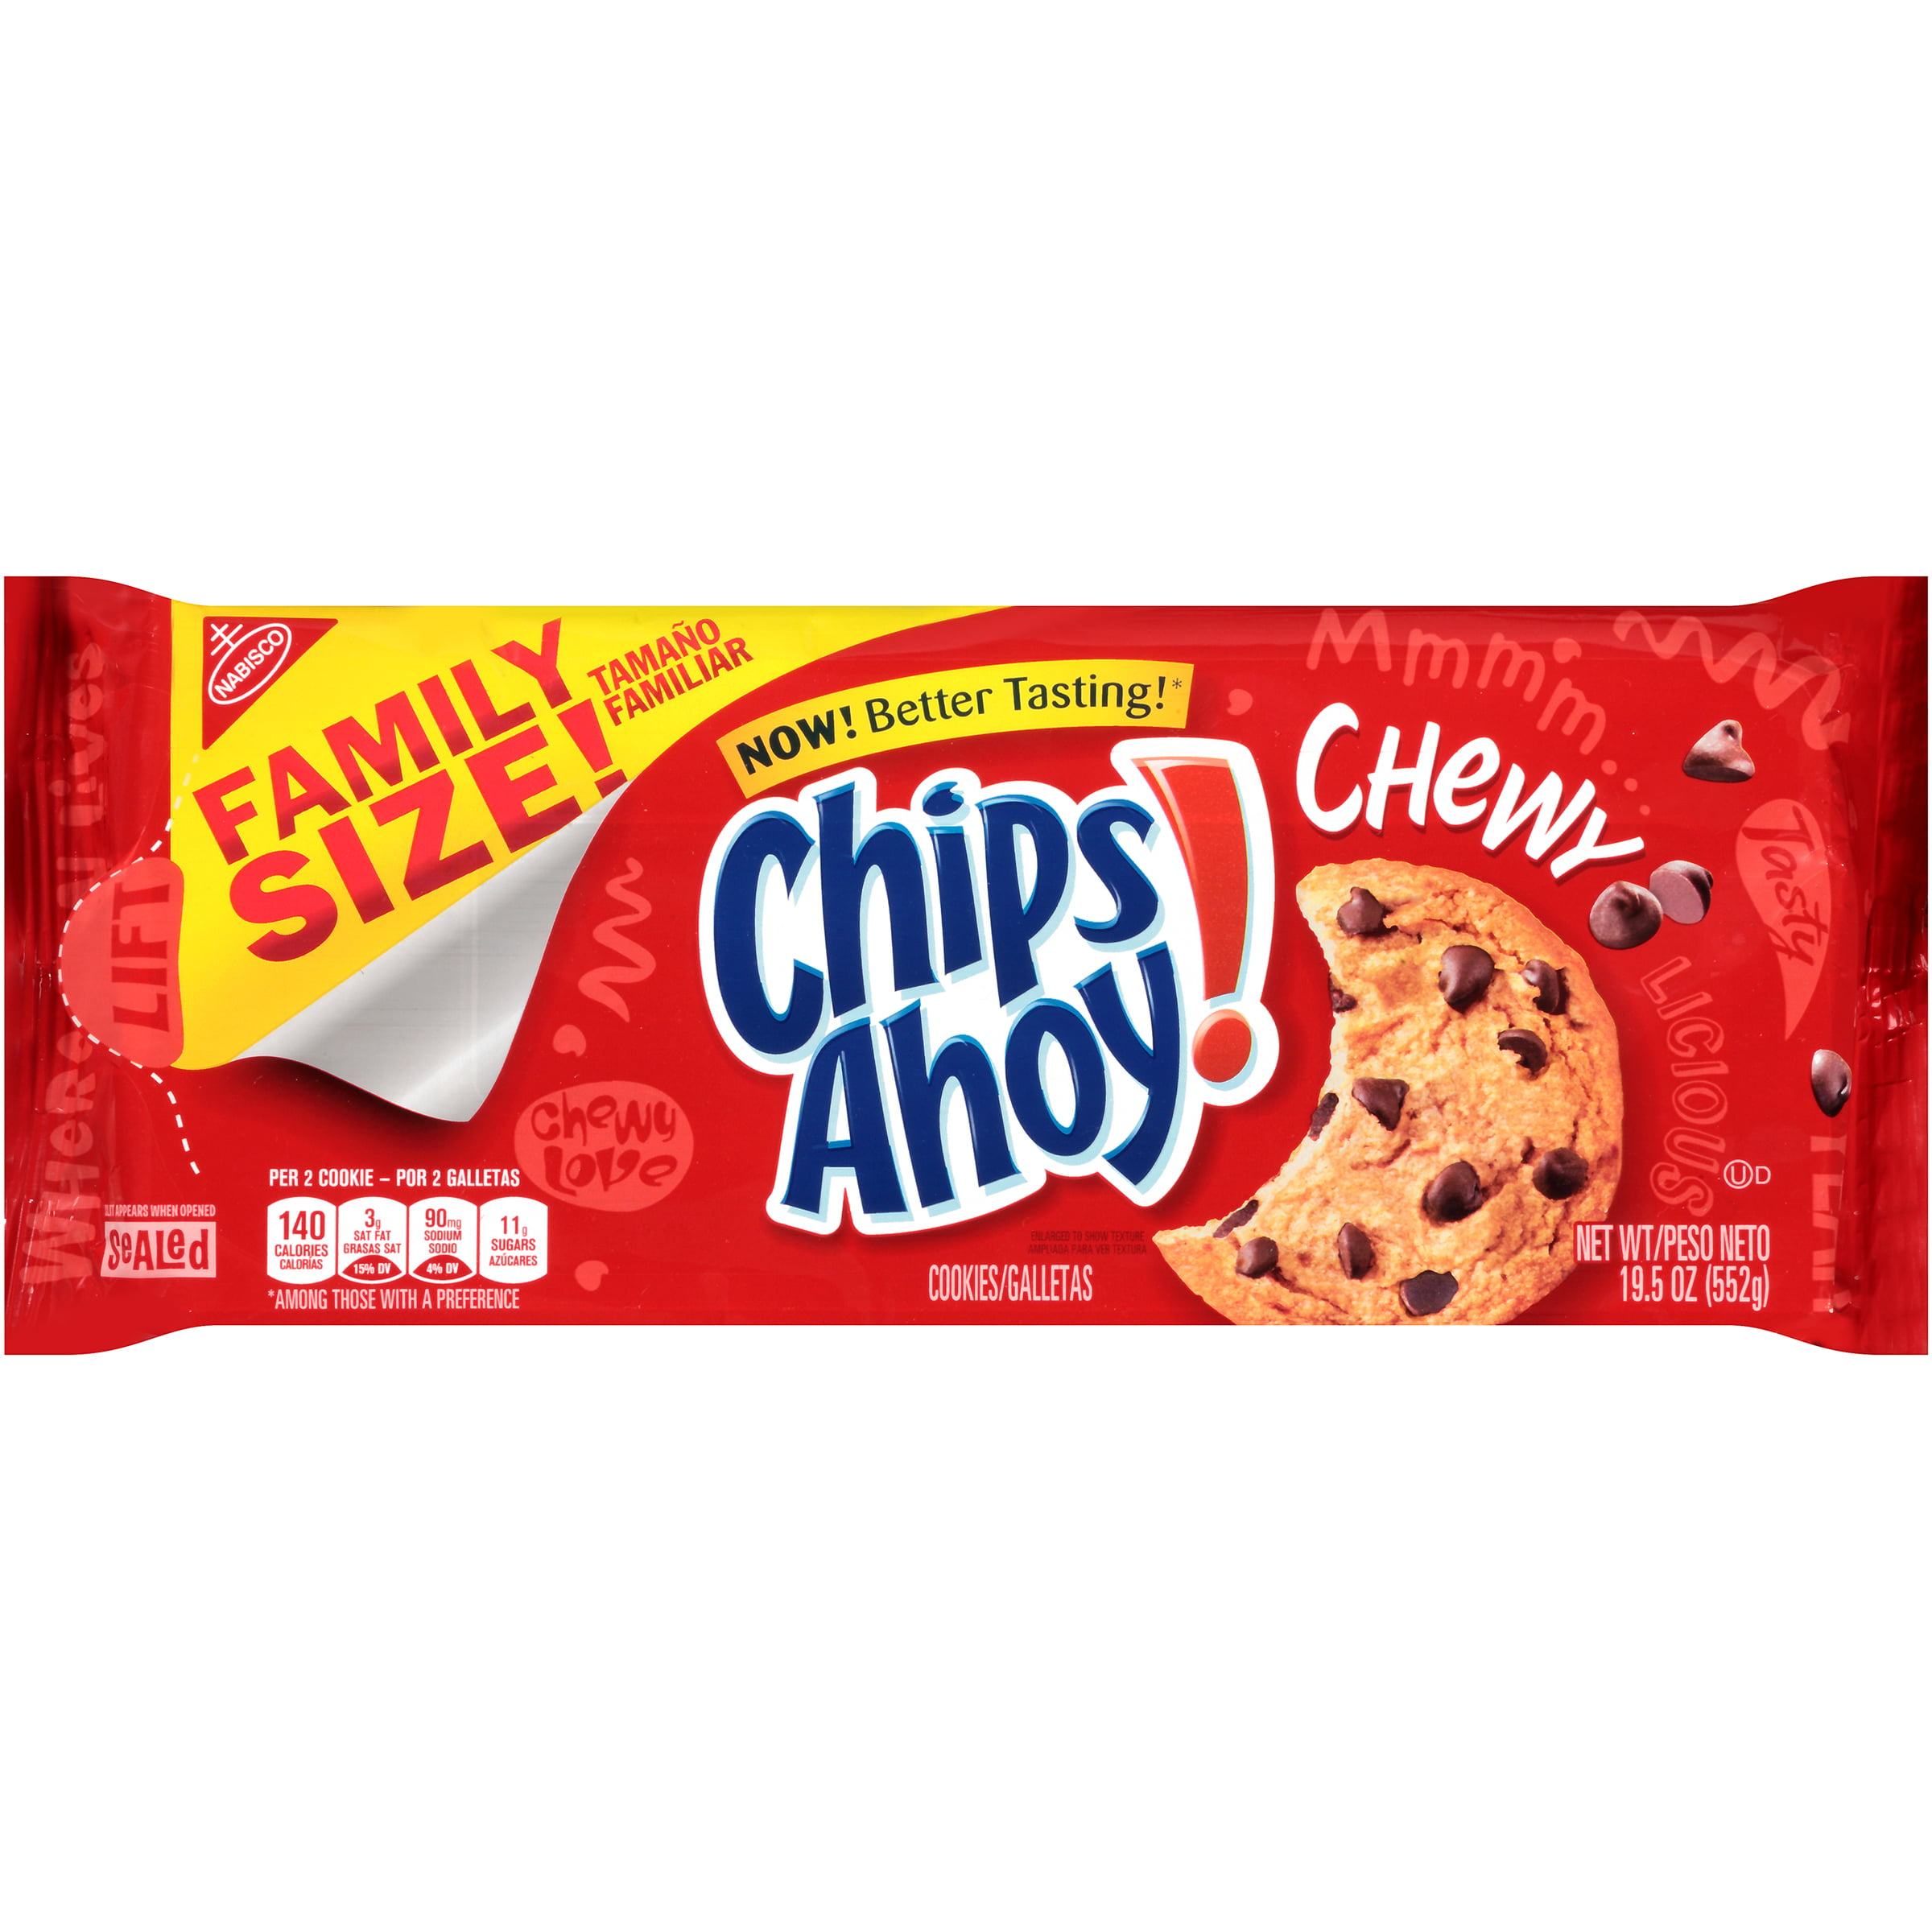 Groovy Chips Ahoy Chewy Chocolate Chip Cookies 19 5 Oz Walmart Com Funny Birthday Cards Online Fluifree Goldxyz